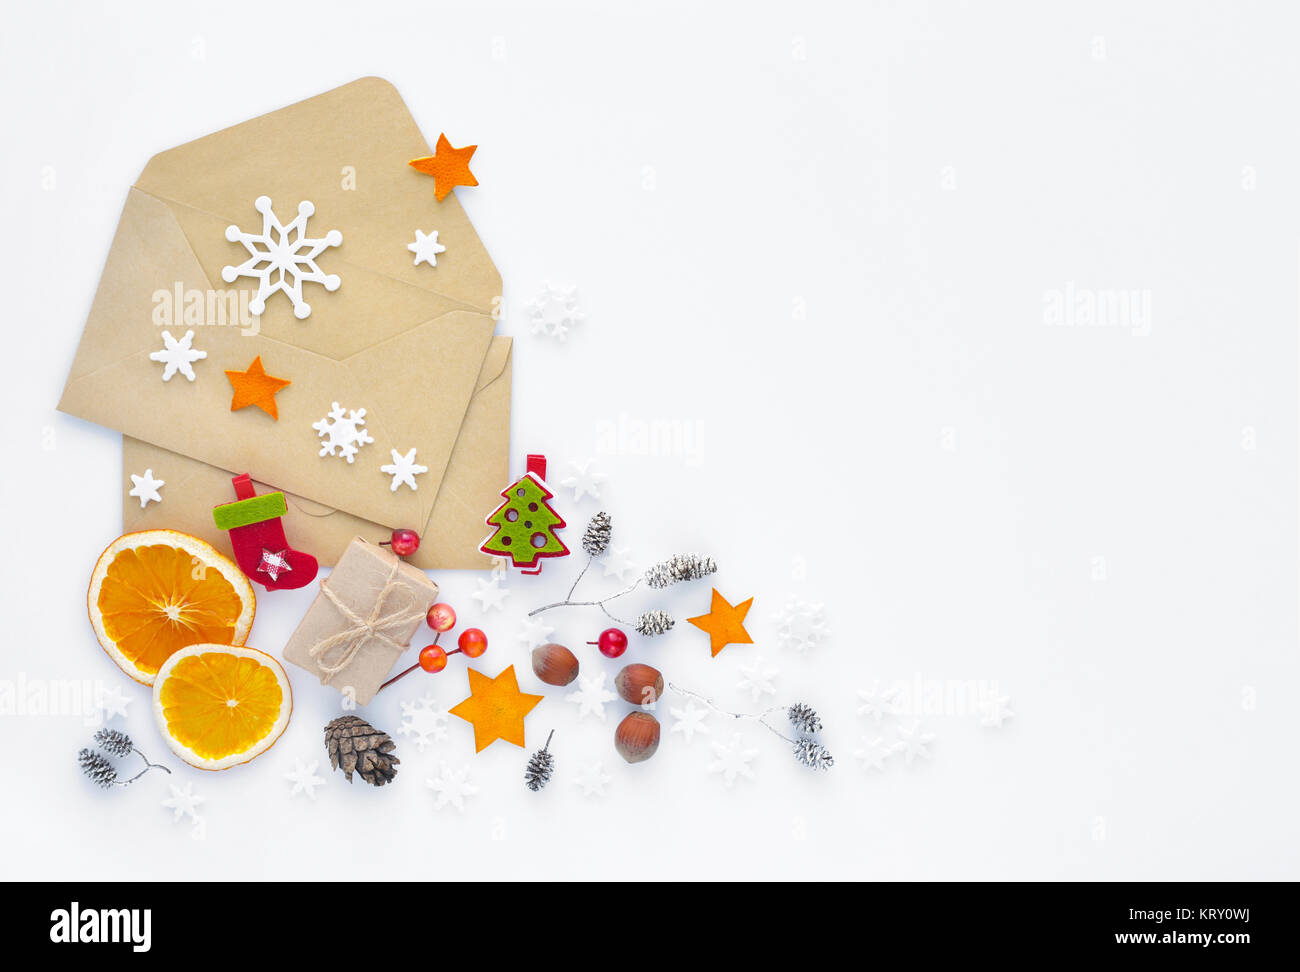 Christmas, happy new year composition. Christmas gifts, envelopes, christmas decorations, snowflakes on white background. Stock Photo